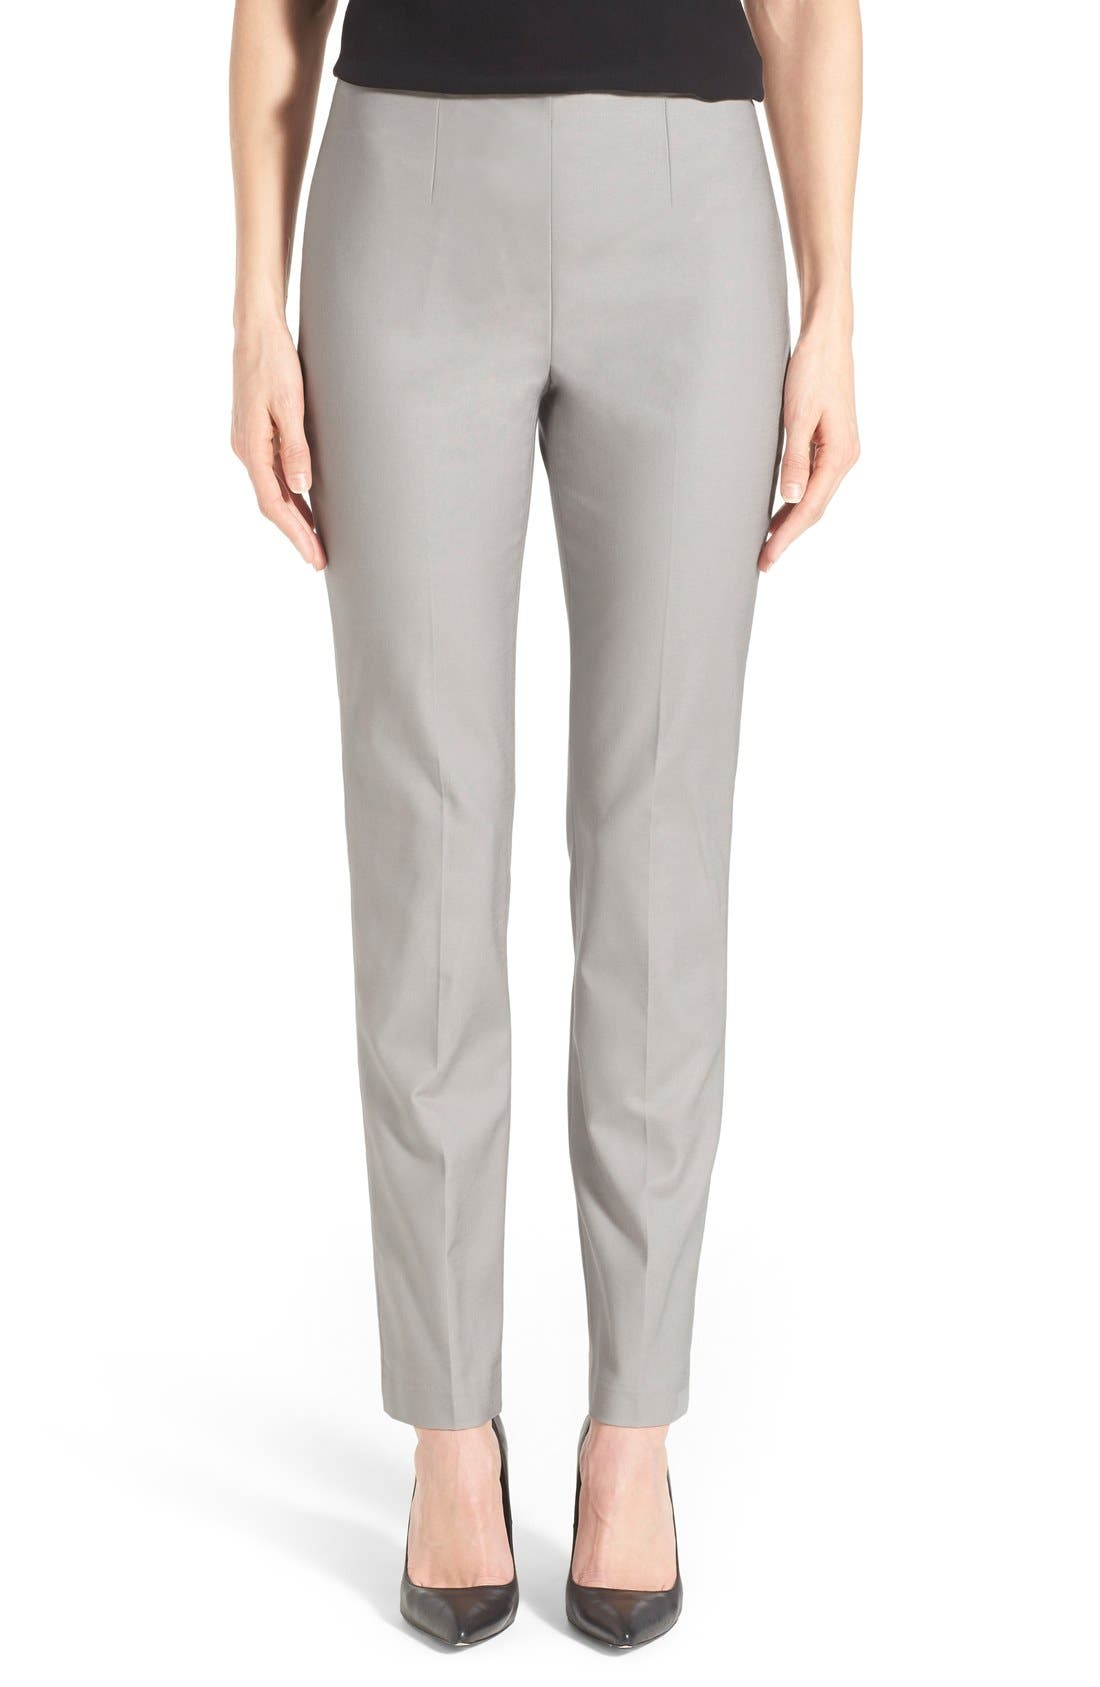 Main Image - NIC+ZOE 'The Perfect' Side Zip Ankle Pants (Petite)